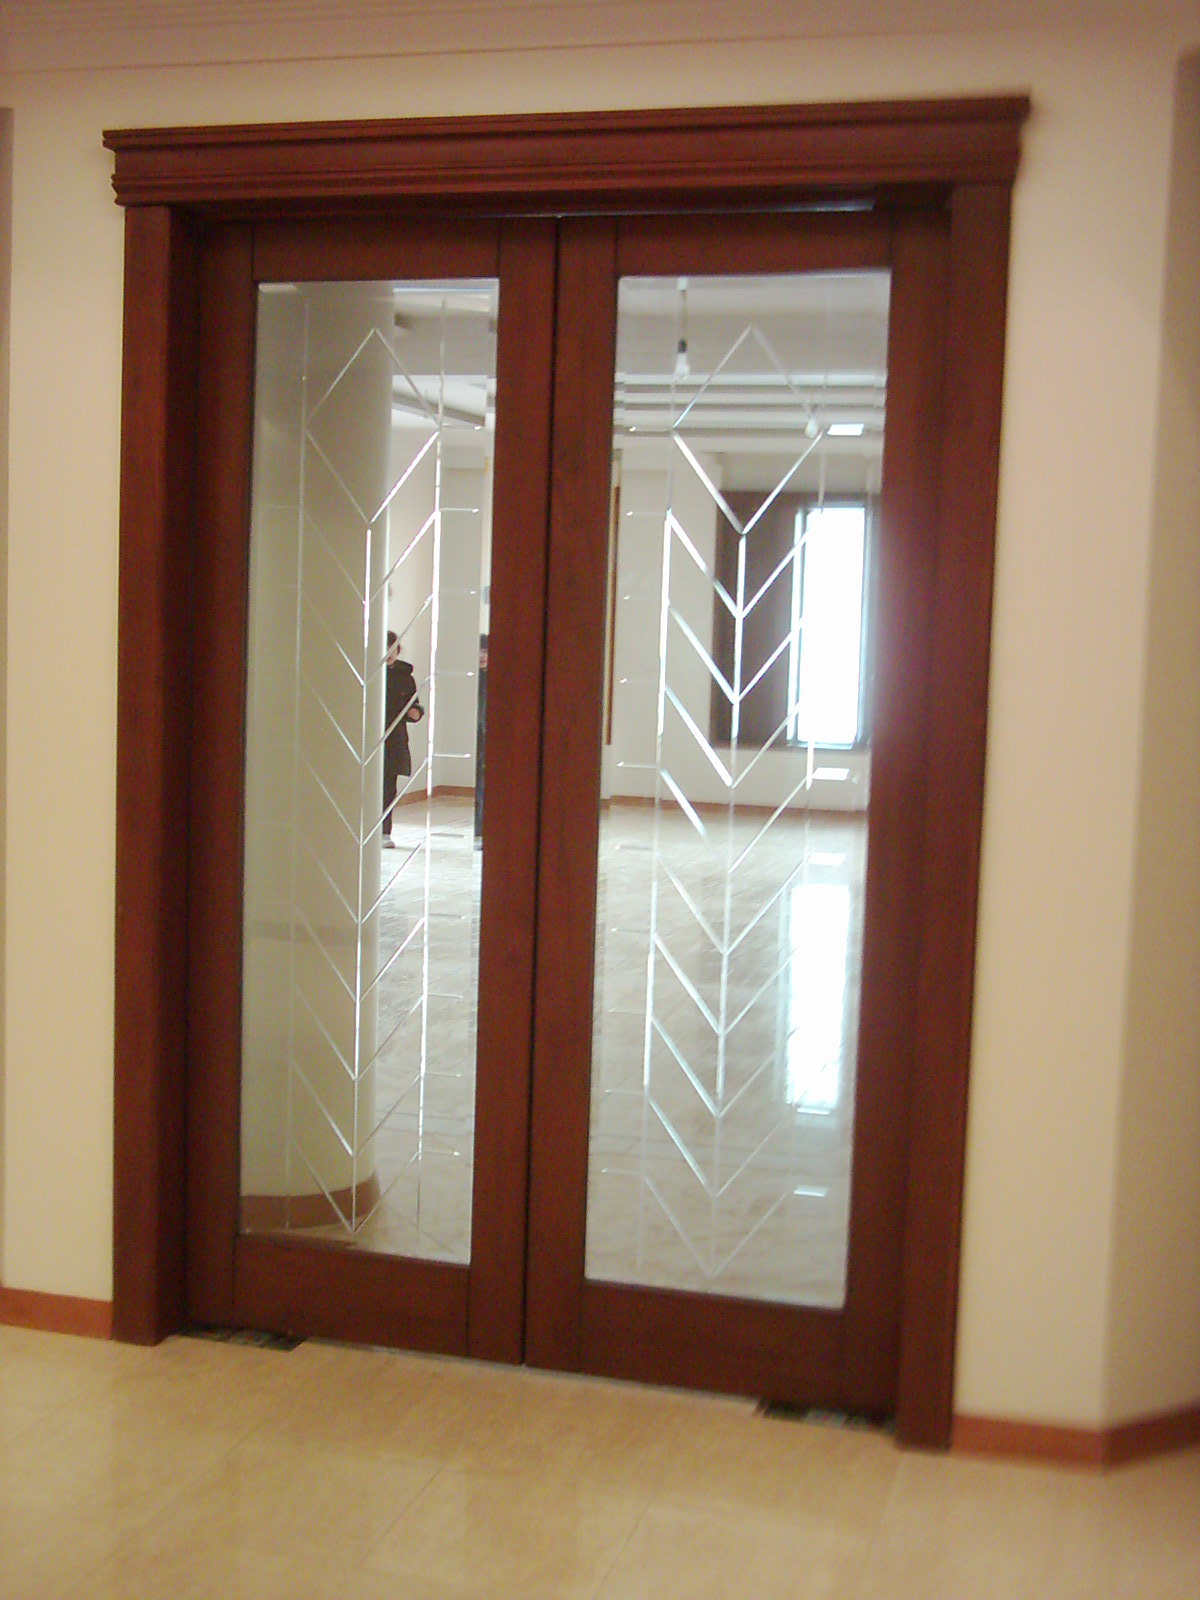 French Doors Interior Frosted Glass An Ideal Material For Use In Any Wardrobe Door Style